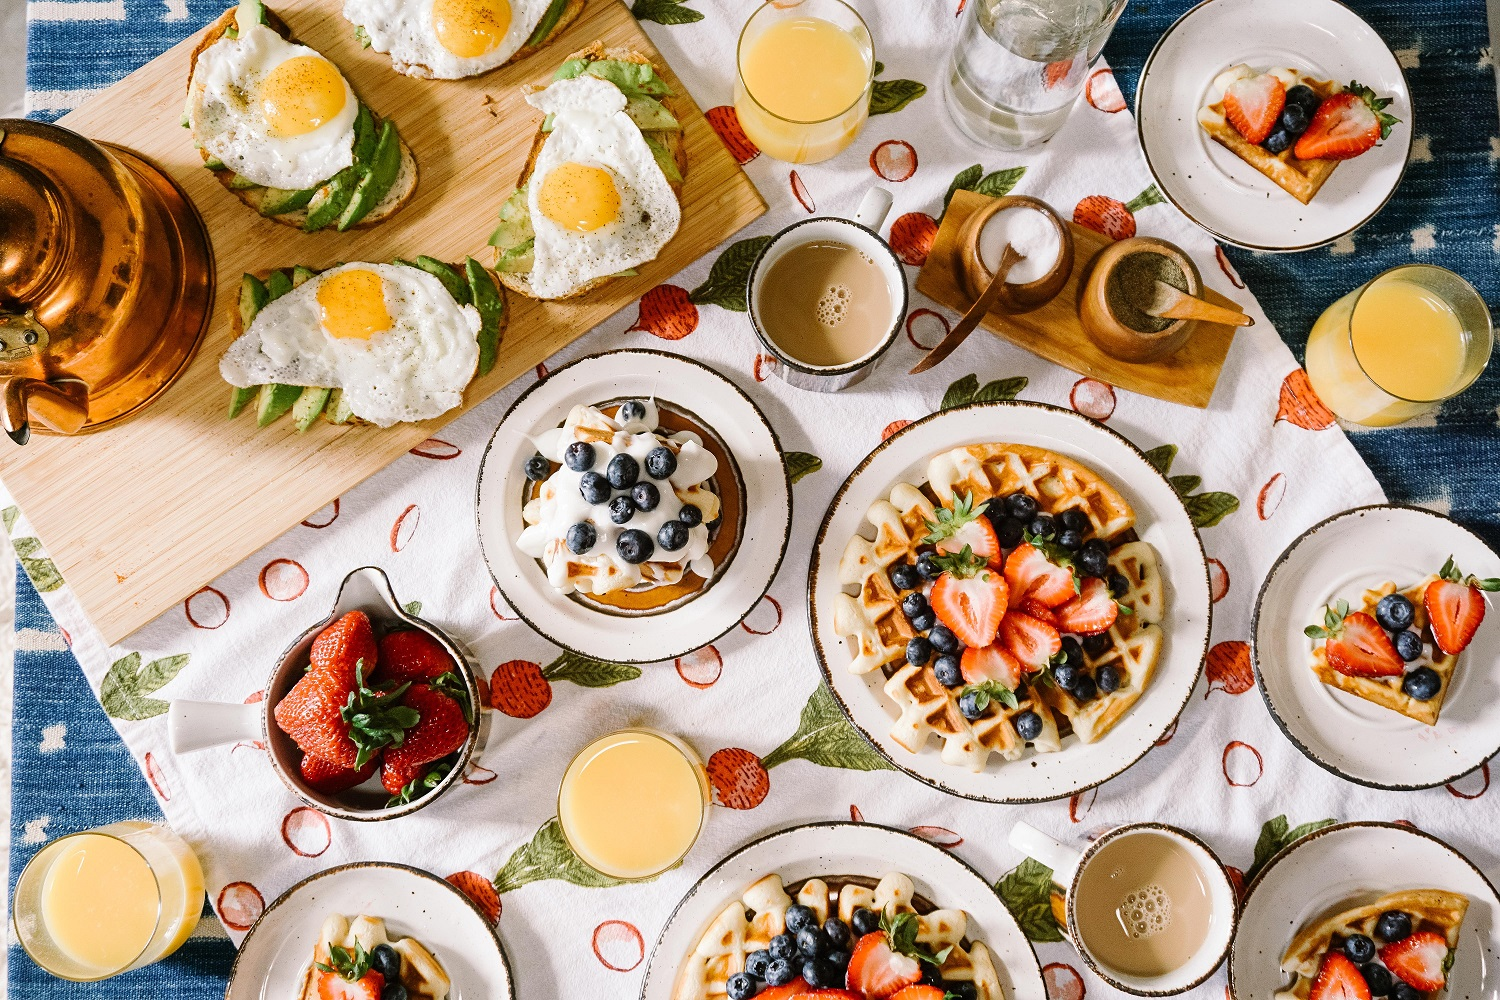 Brunch Seattle-style: Where To Have The Most Important Meal Of The Week